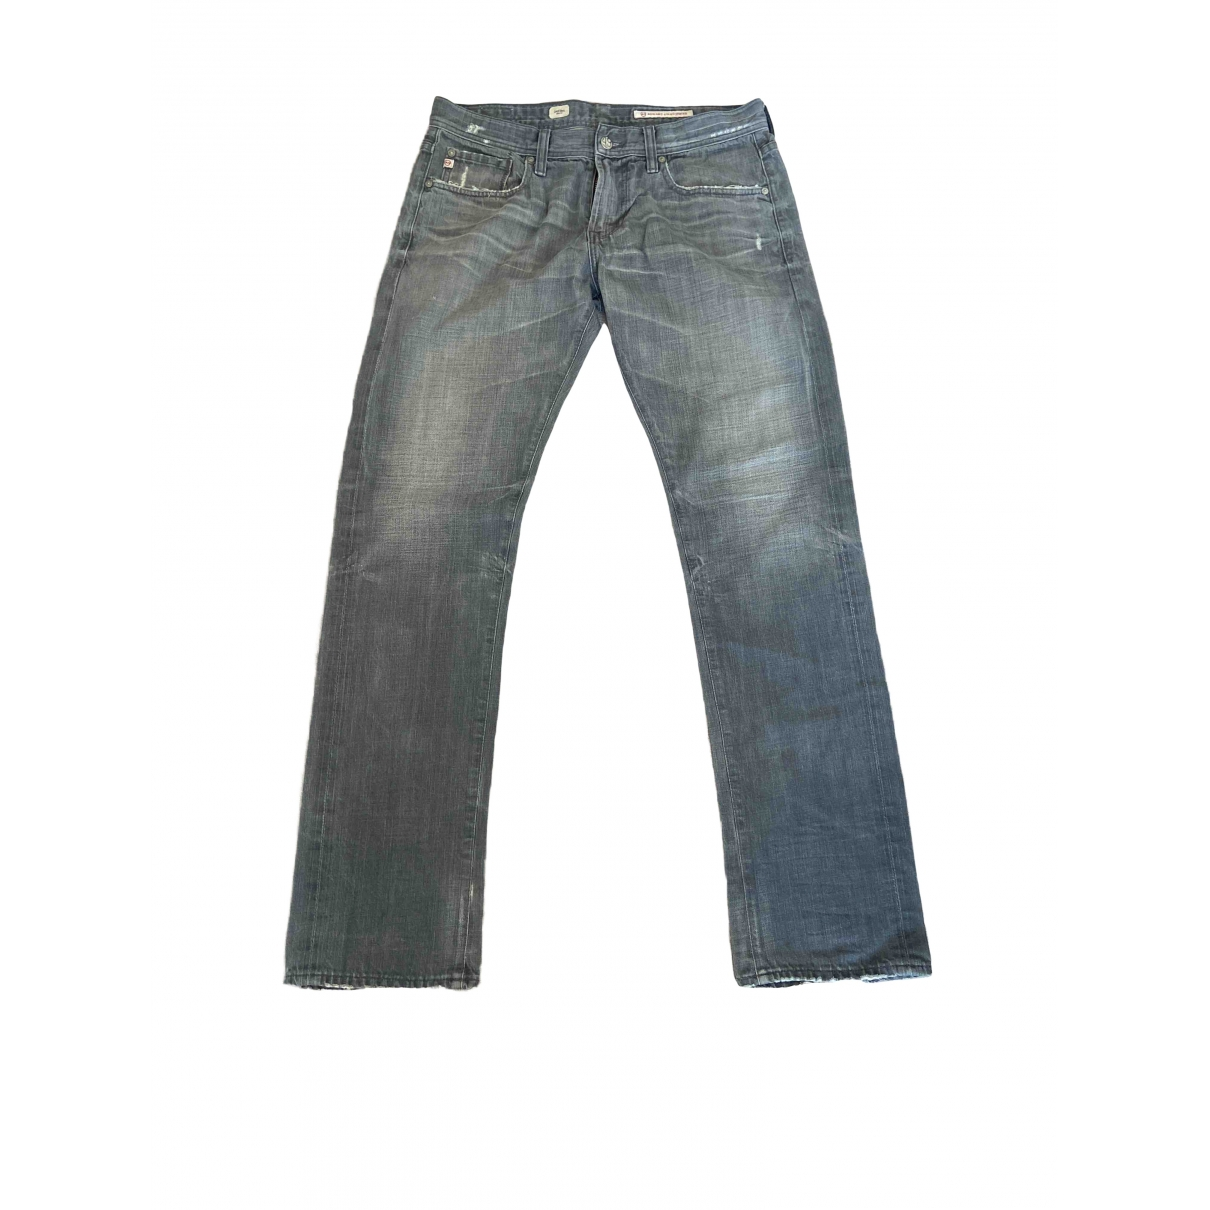 Adriano Goldschmied \N Grey Cotton Jeans for Men 32 US